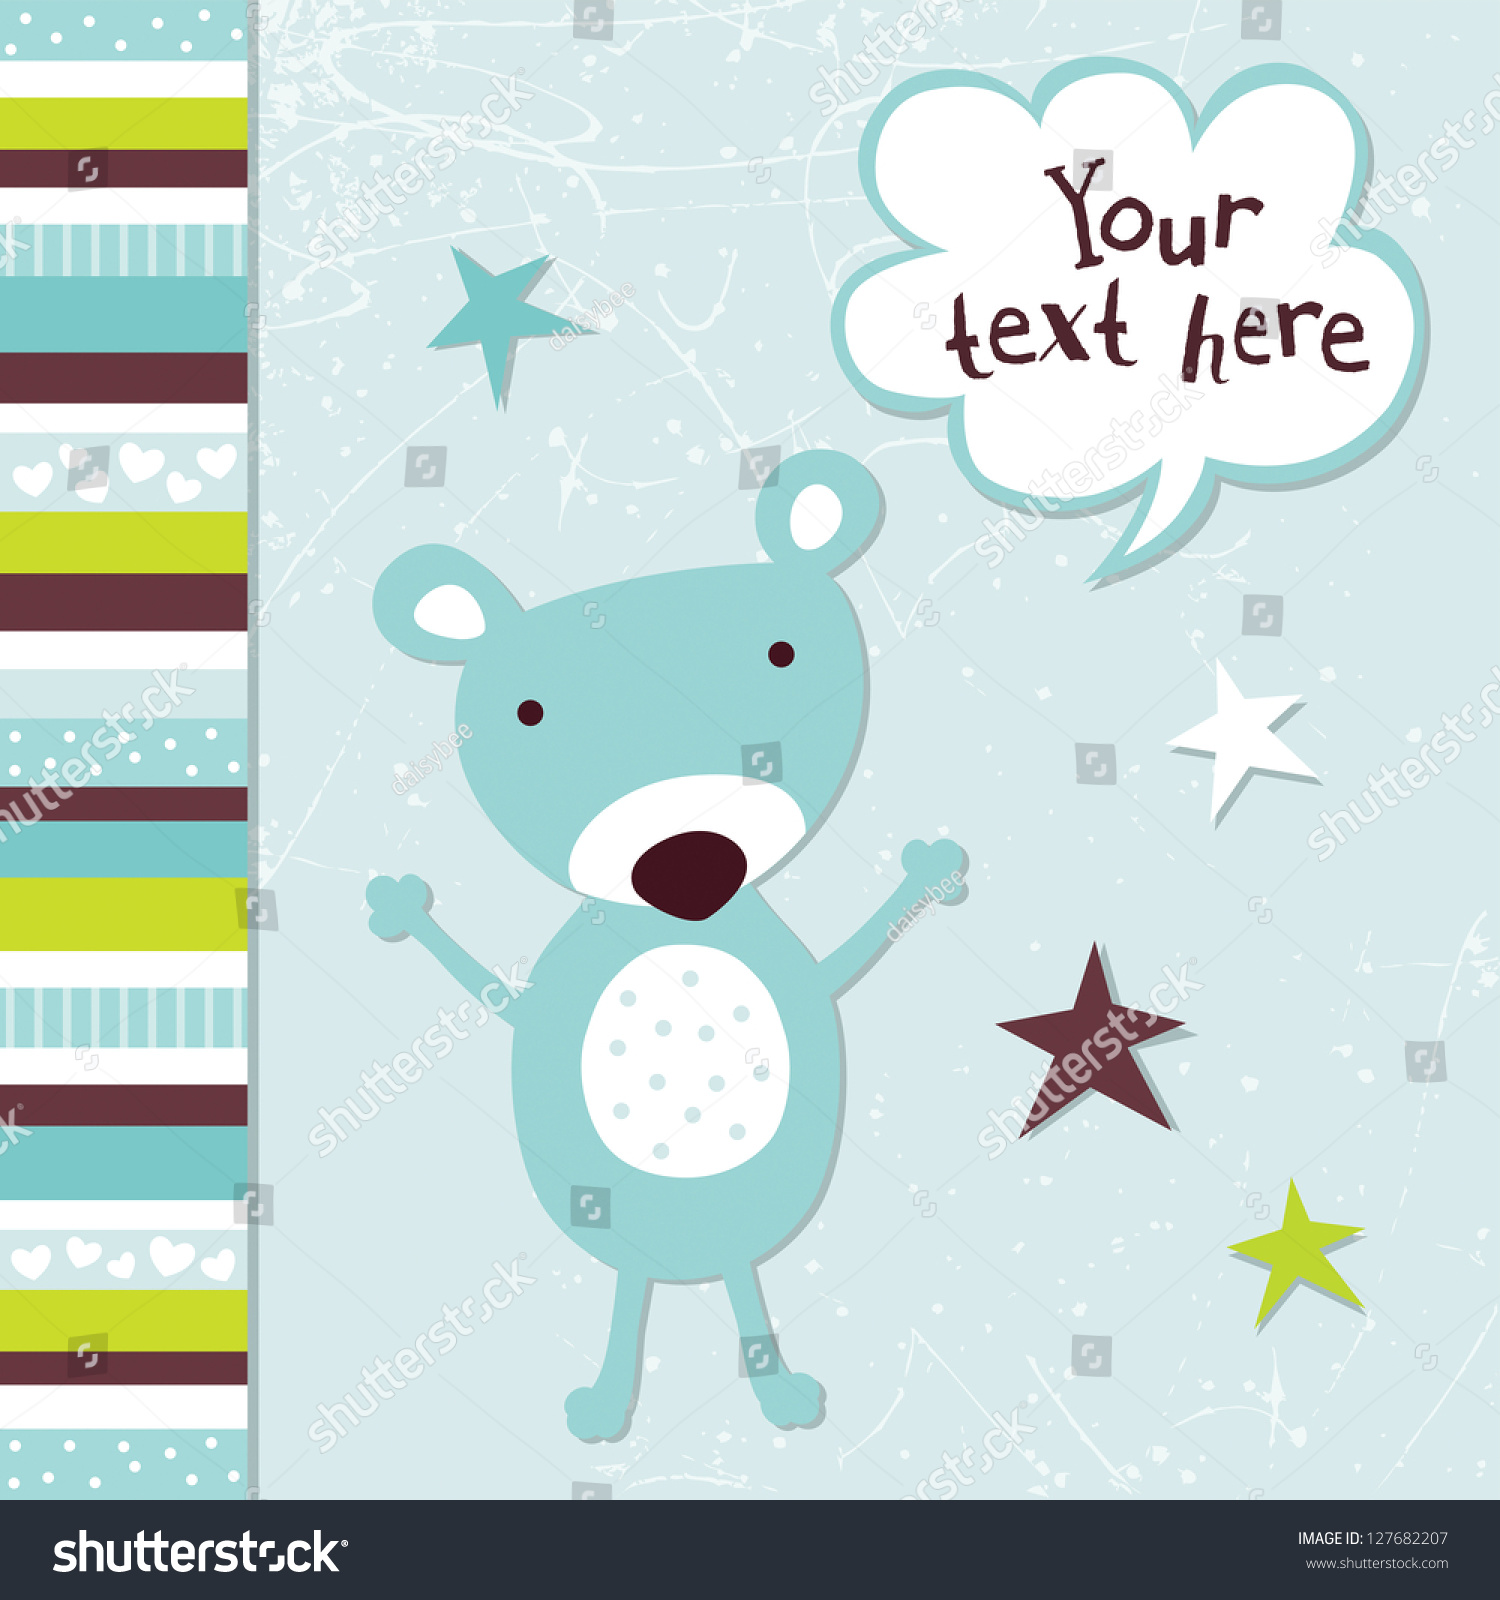 Raster Greeting Card Template For A Baby Boy With Cute Teddy Bear, And  Speech Bubble